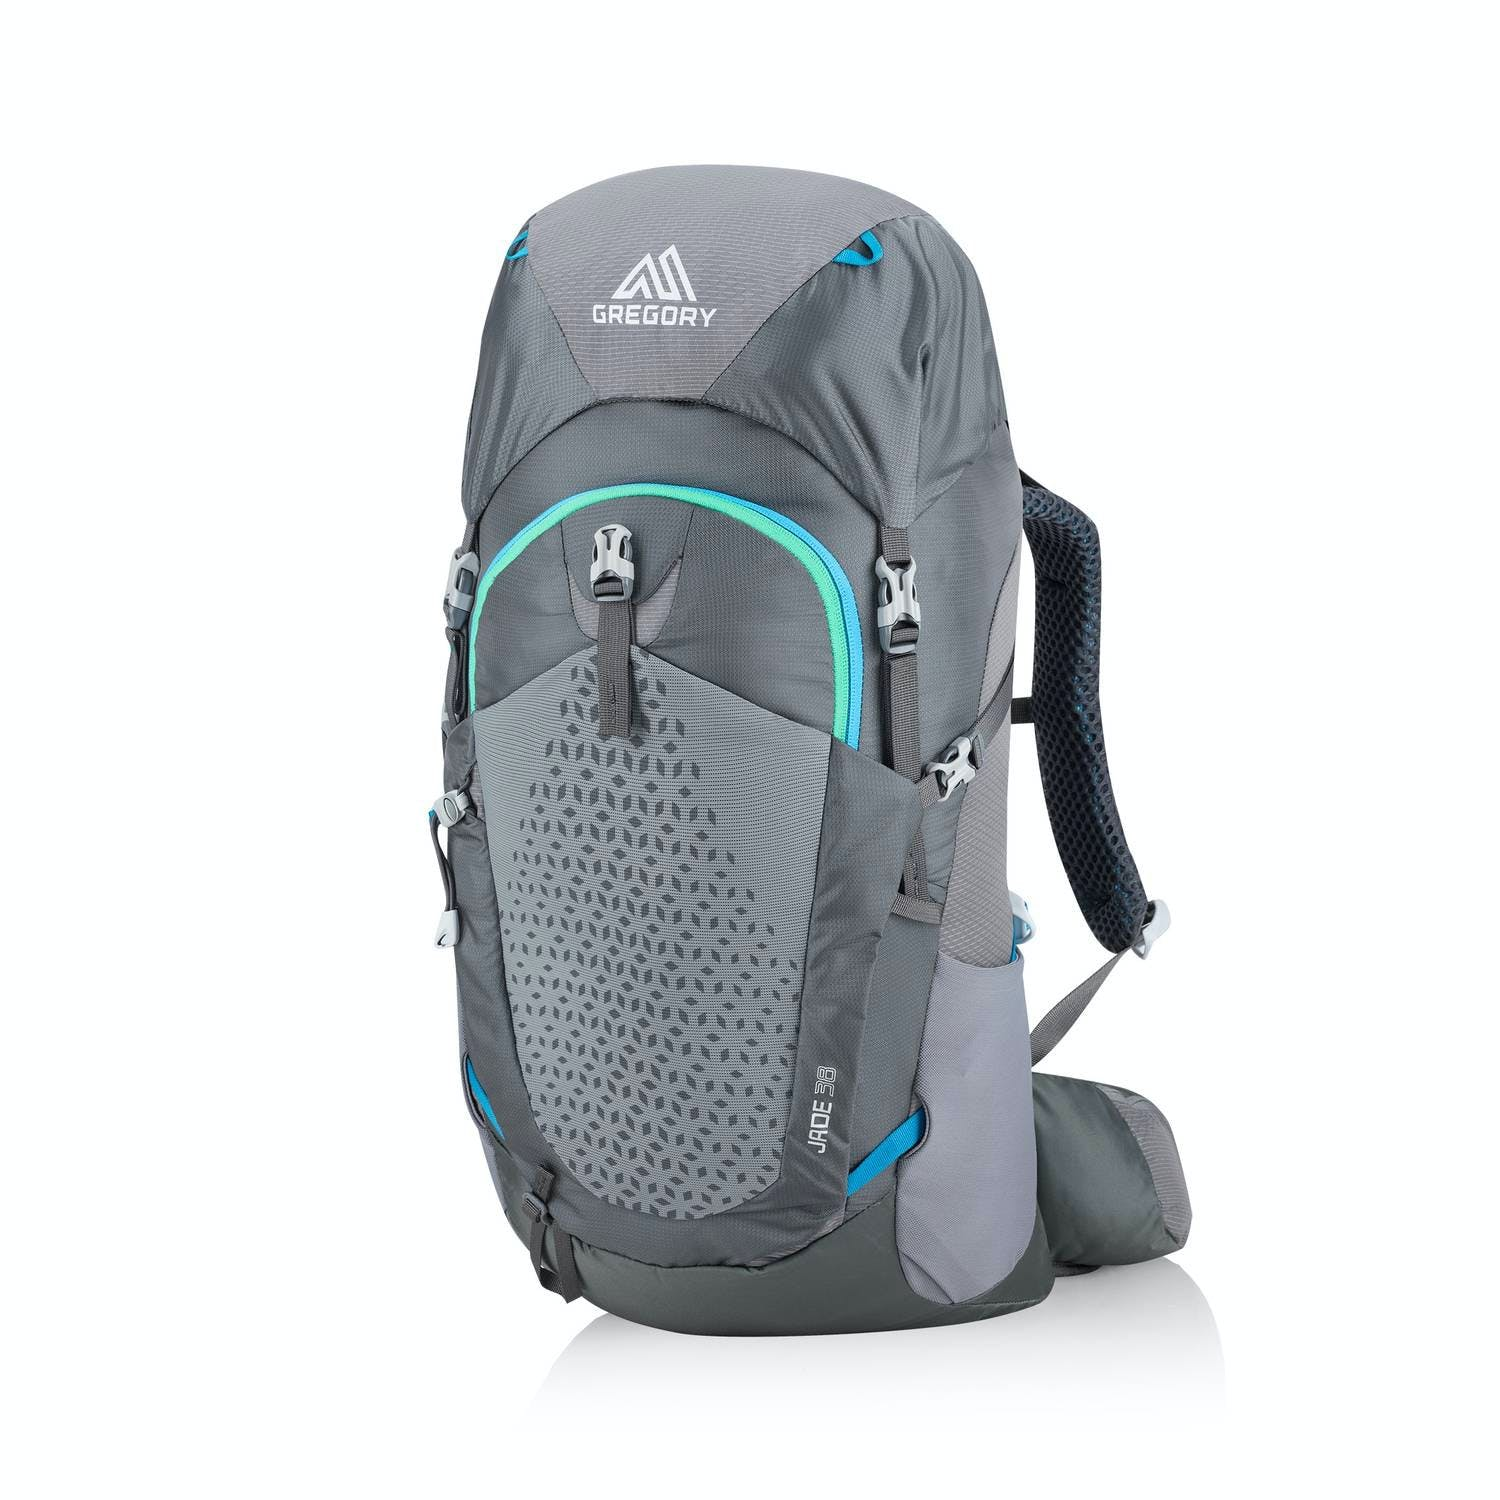 Gregory - Jade 38 Pack - XS/SM - Ethereal Grey